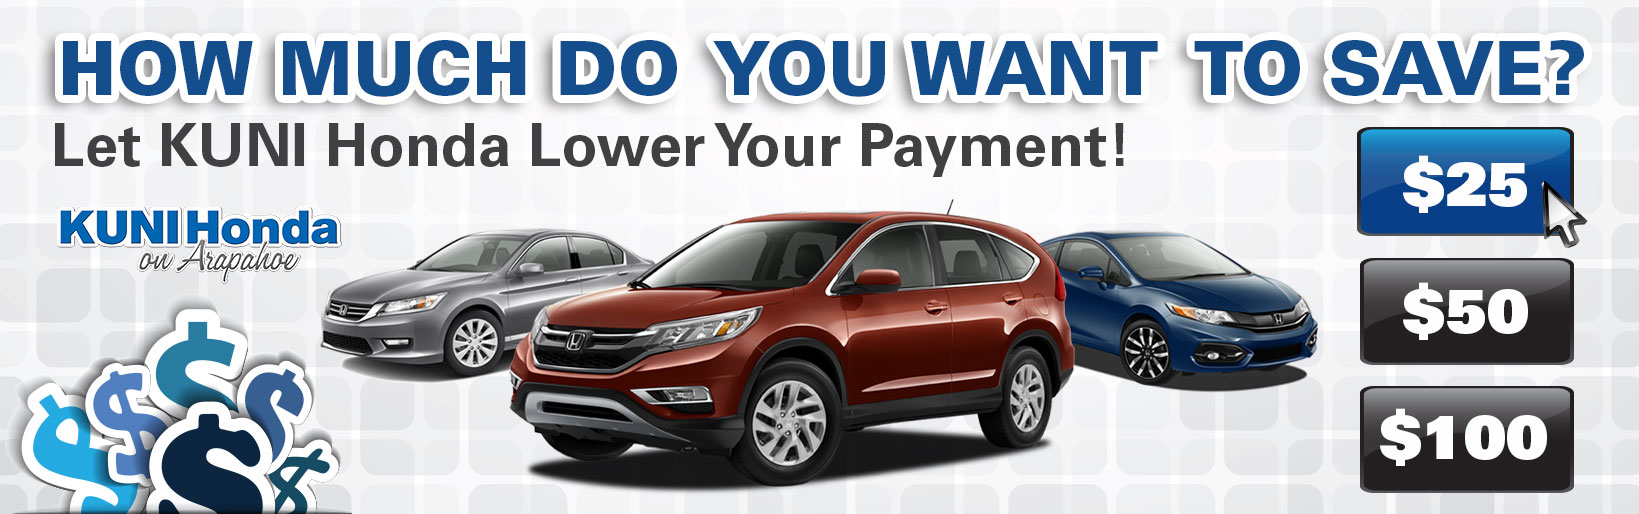 Auto financing options lower car payment near denver for Honda financial payments